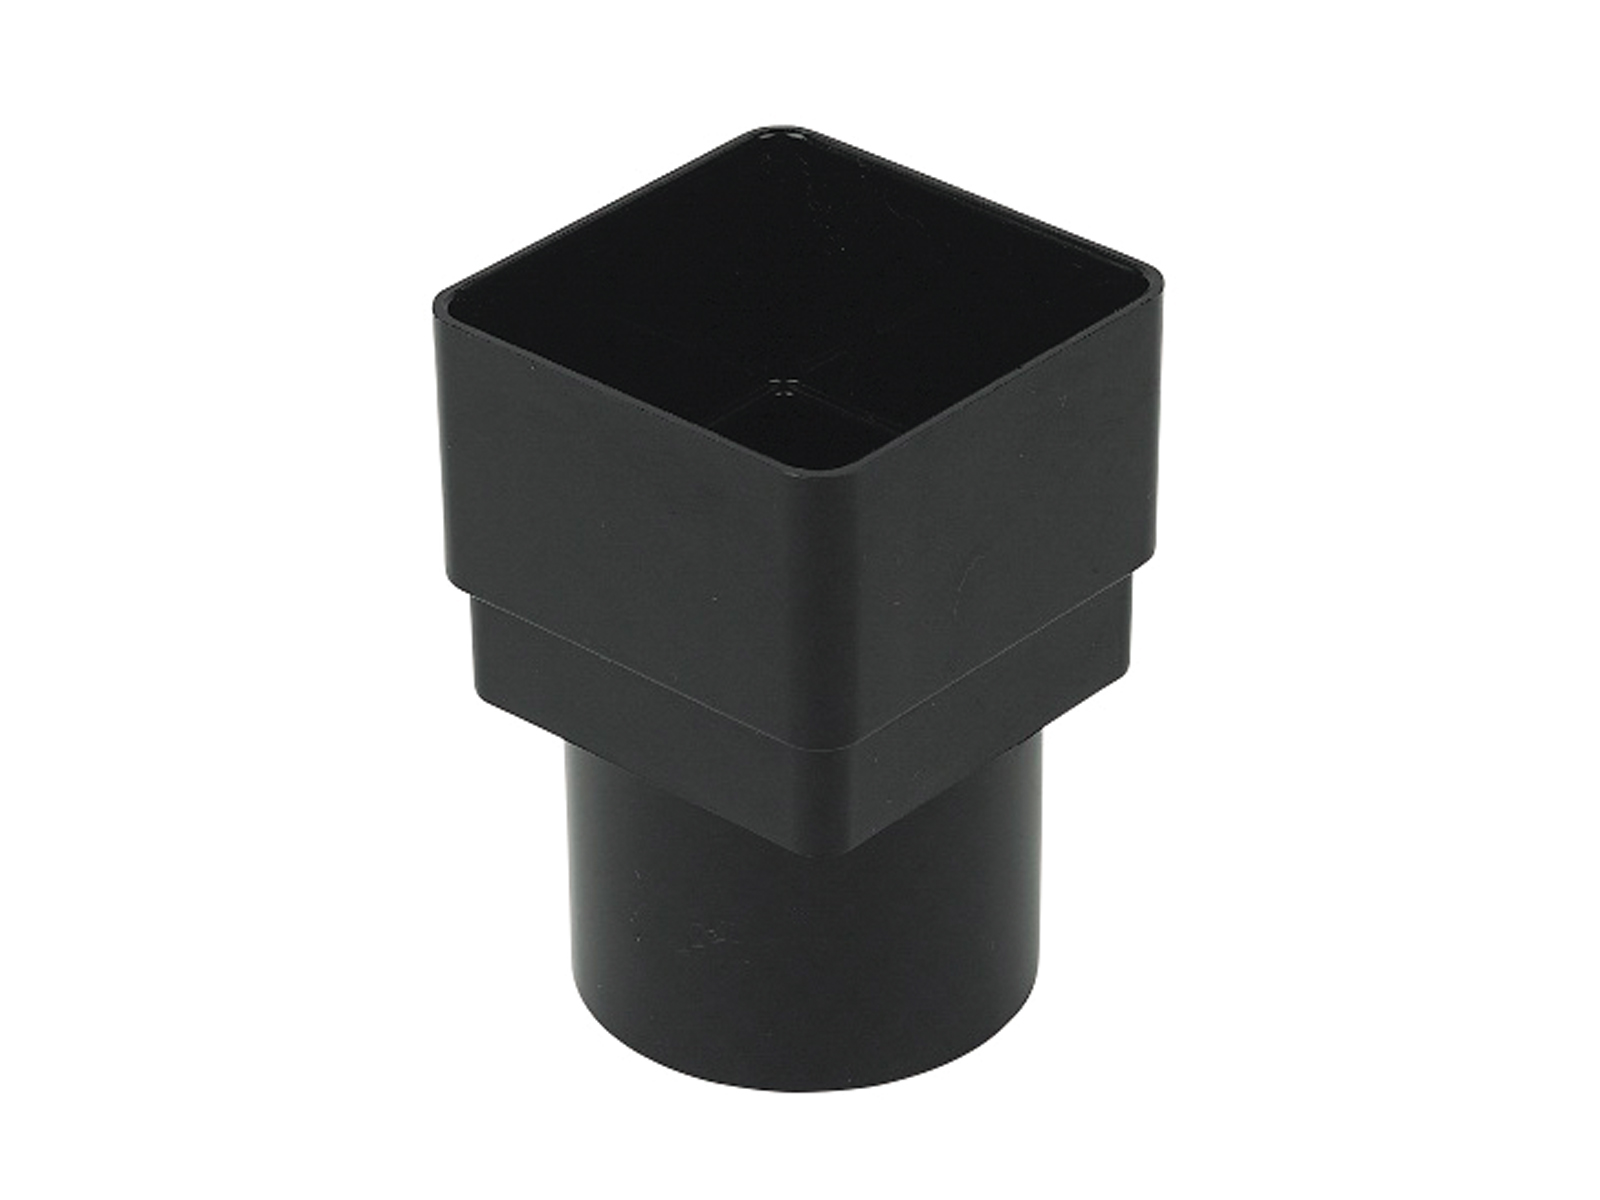 FLOPLAST RDS2BL 65MM SQUARE TO 68MM ROUND DOWNPIPE CONNECTOR - BLACK